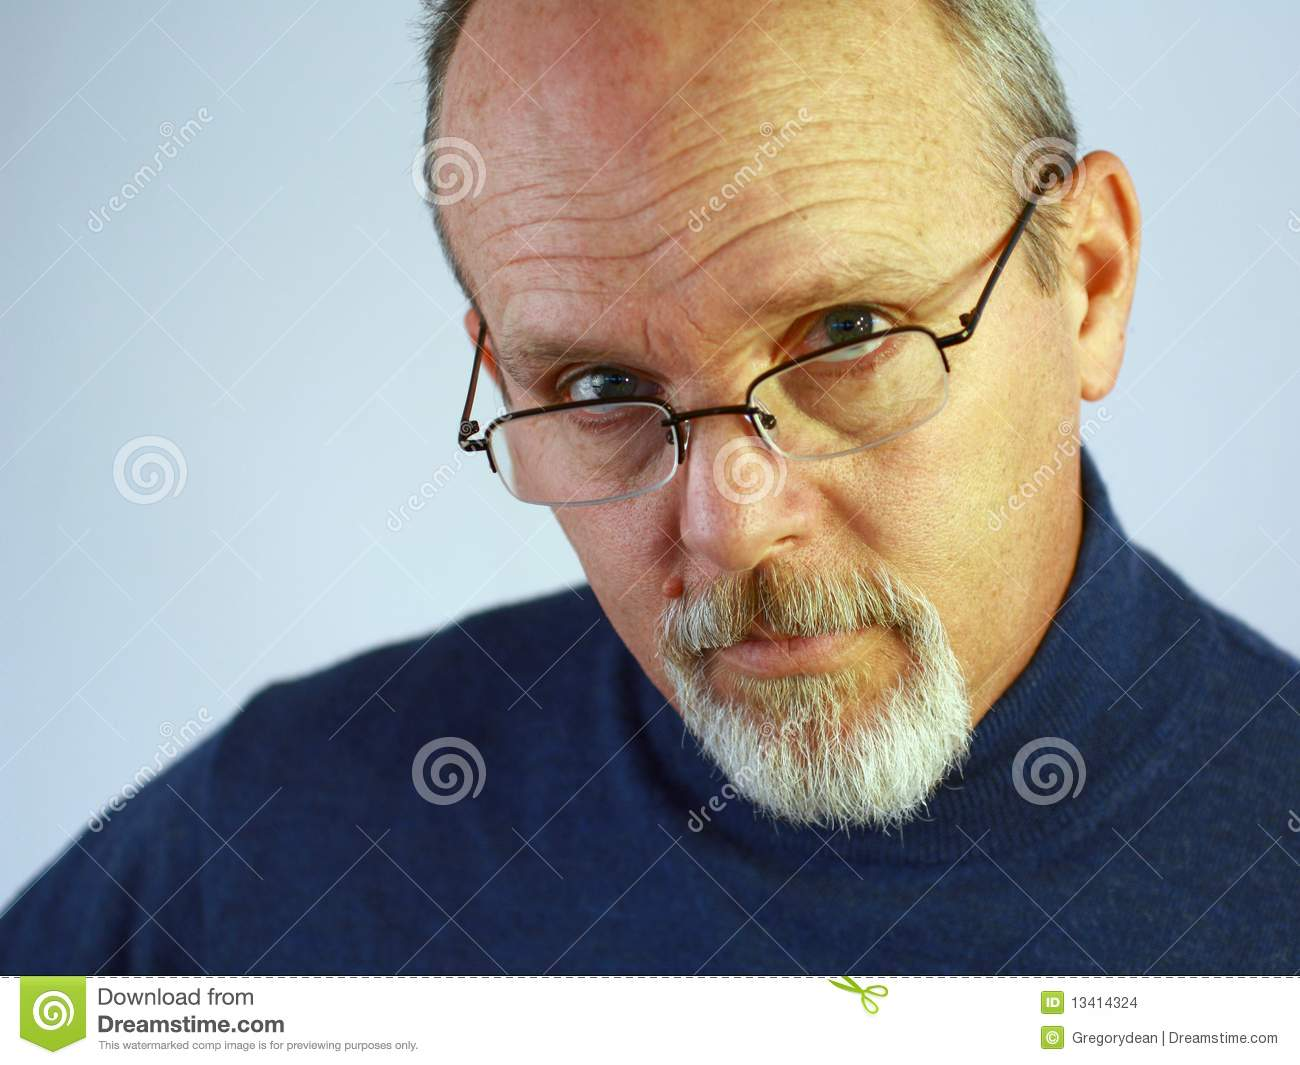 Man With Glasses And Goatee Stock Images - Image: 13414324 Quiet Person Clipart